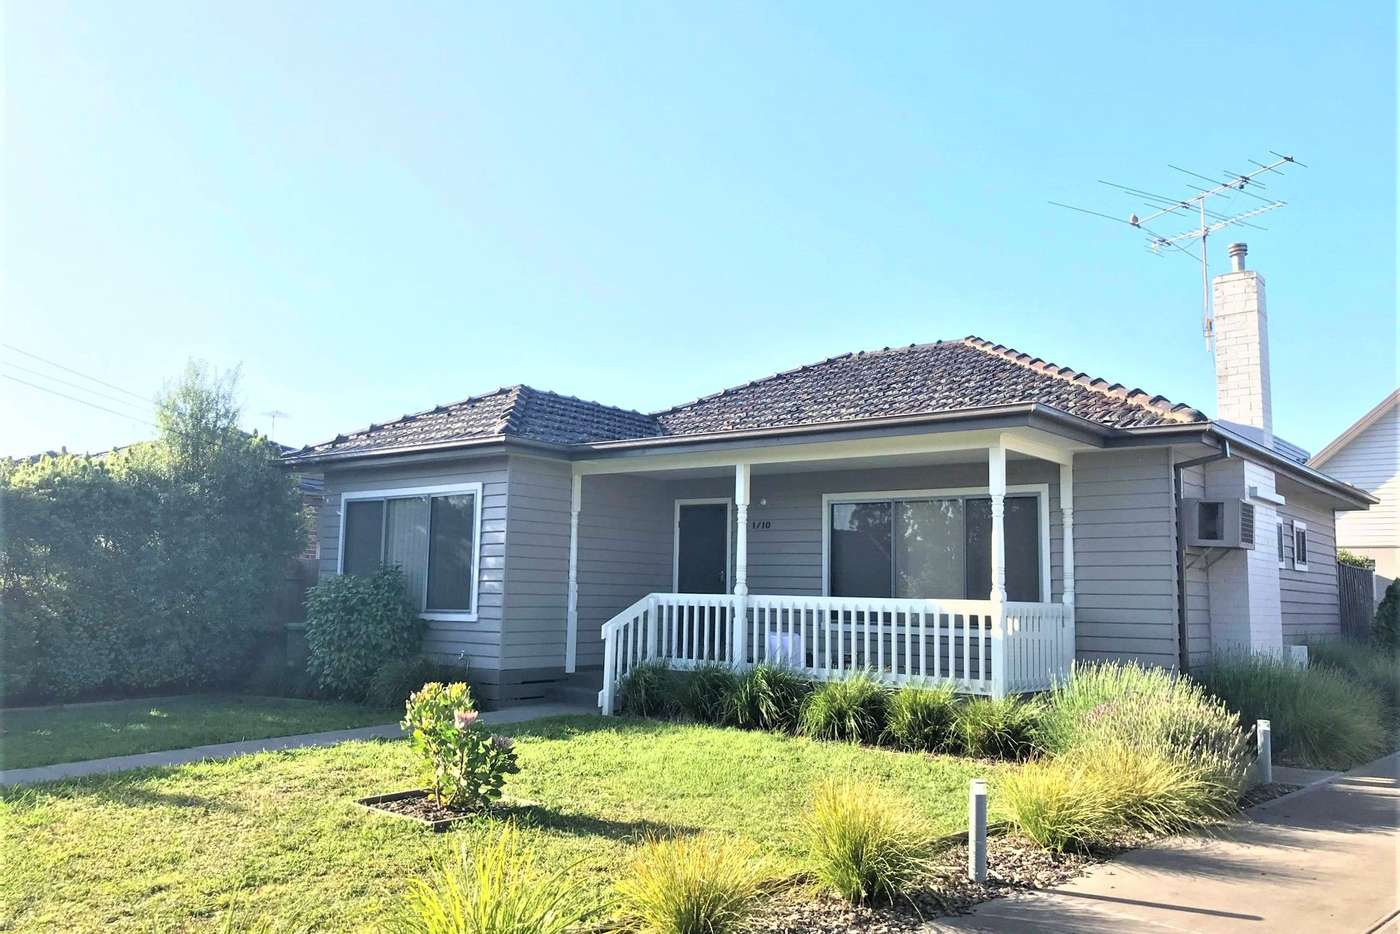 Main view of Homely house listing, 1/10 Tovey Street, Reservoir VIC 3073